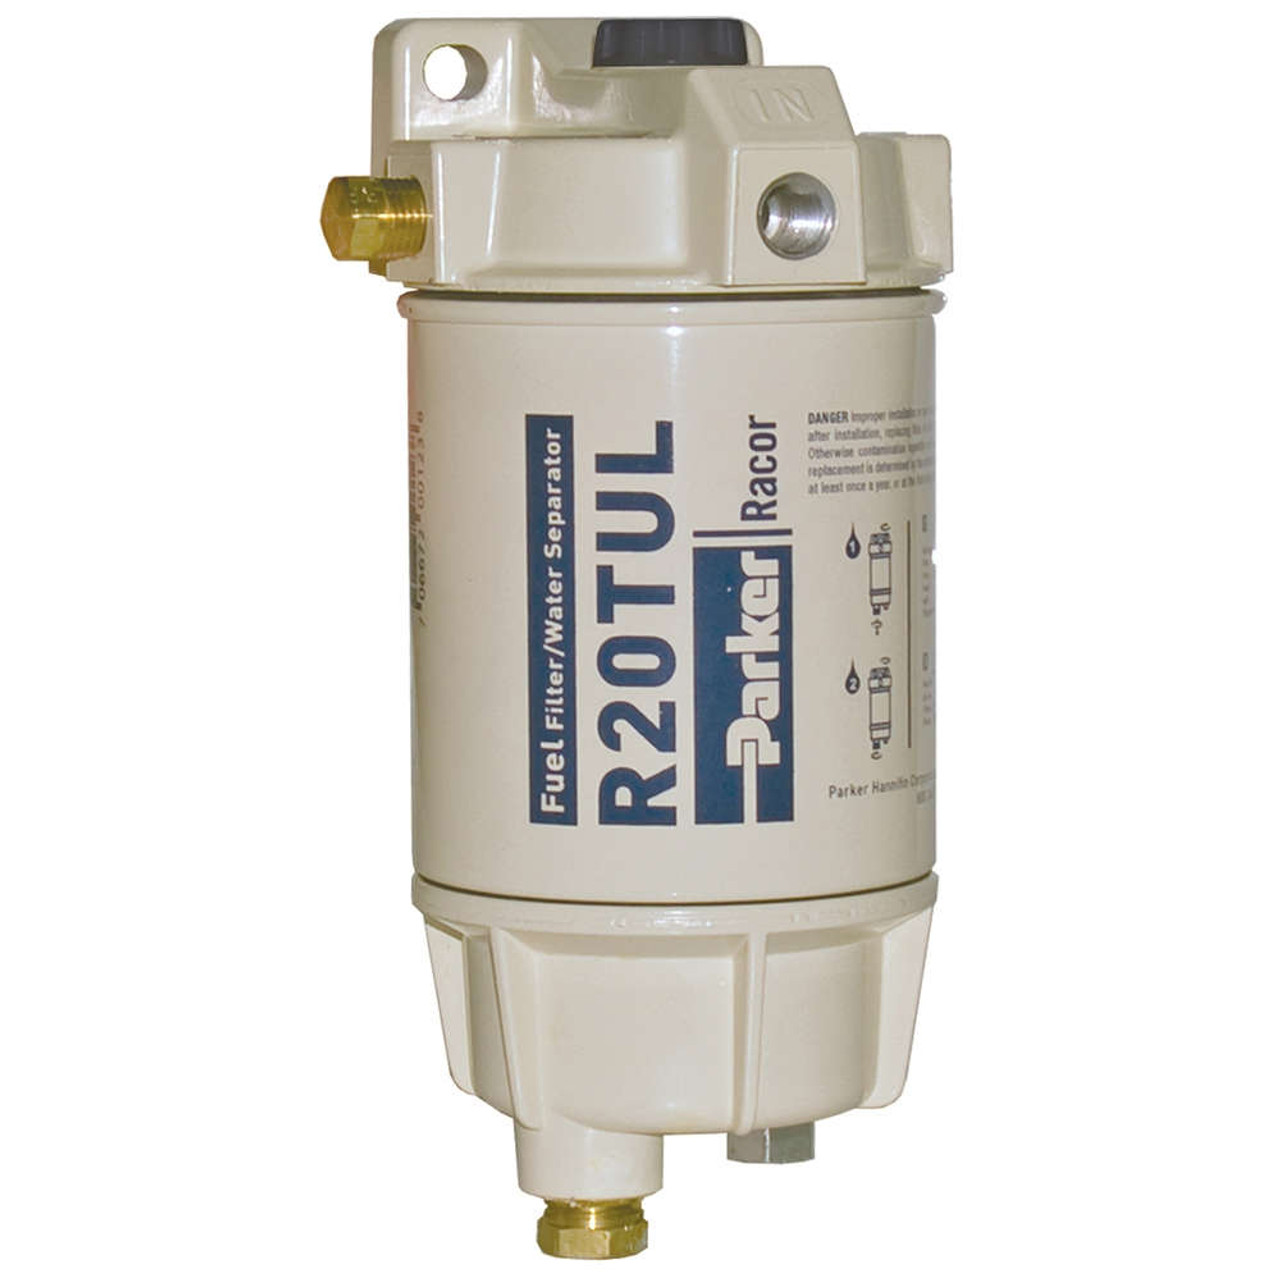 racor 1 4 in 30 gph aquabloc marine spin on type diesel fuel filter water separator assembly 6 qty john m ellsworth co inc  [ 1000 x 1000 Pixel ]